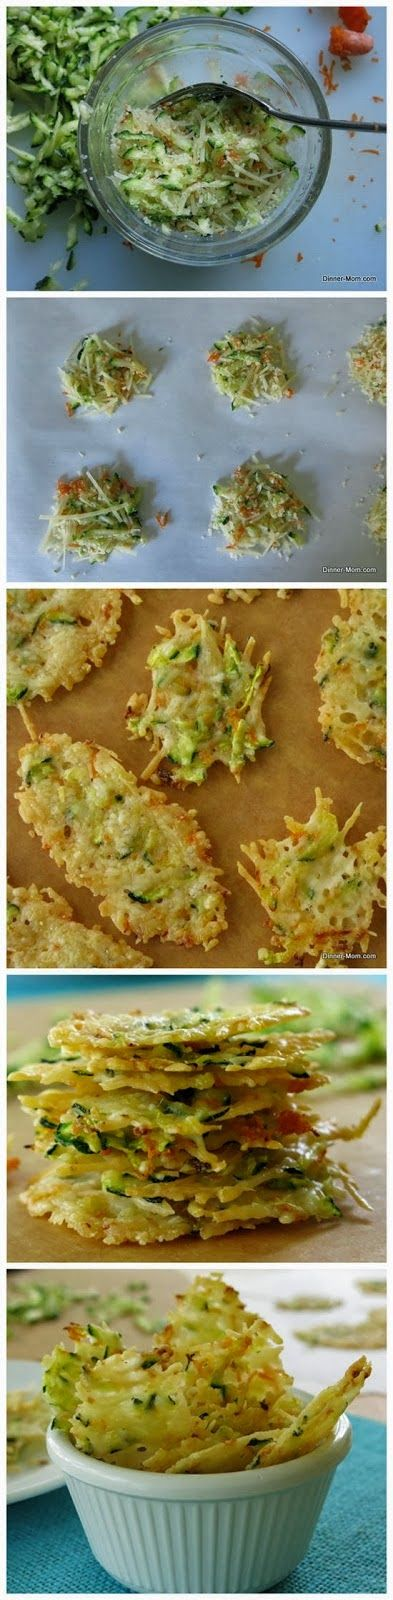 Parmesan Cheese Crisps Laced with Zucchini & Carrots [ KellysDelight.com ] #healthy